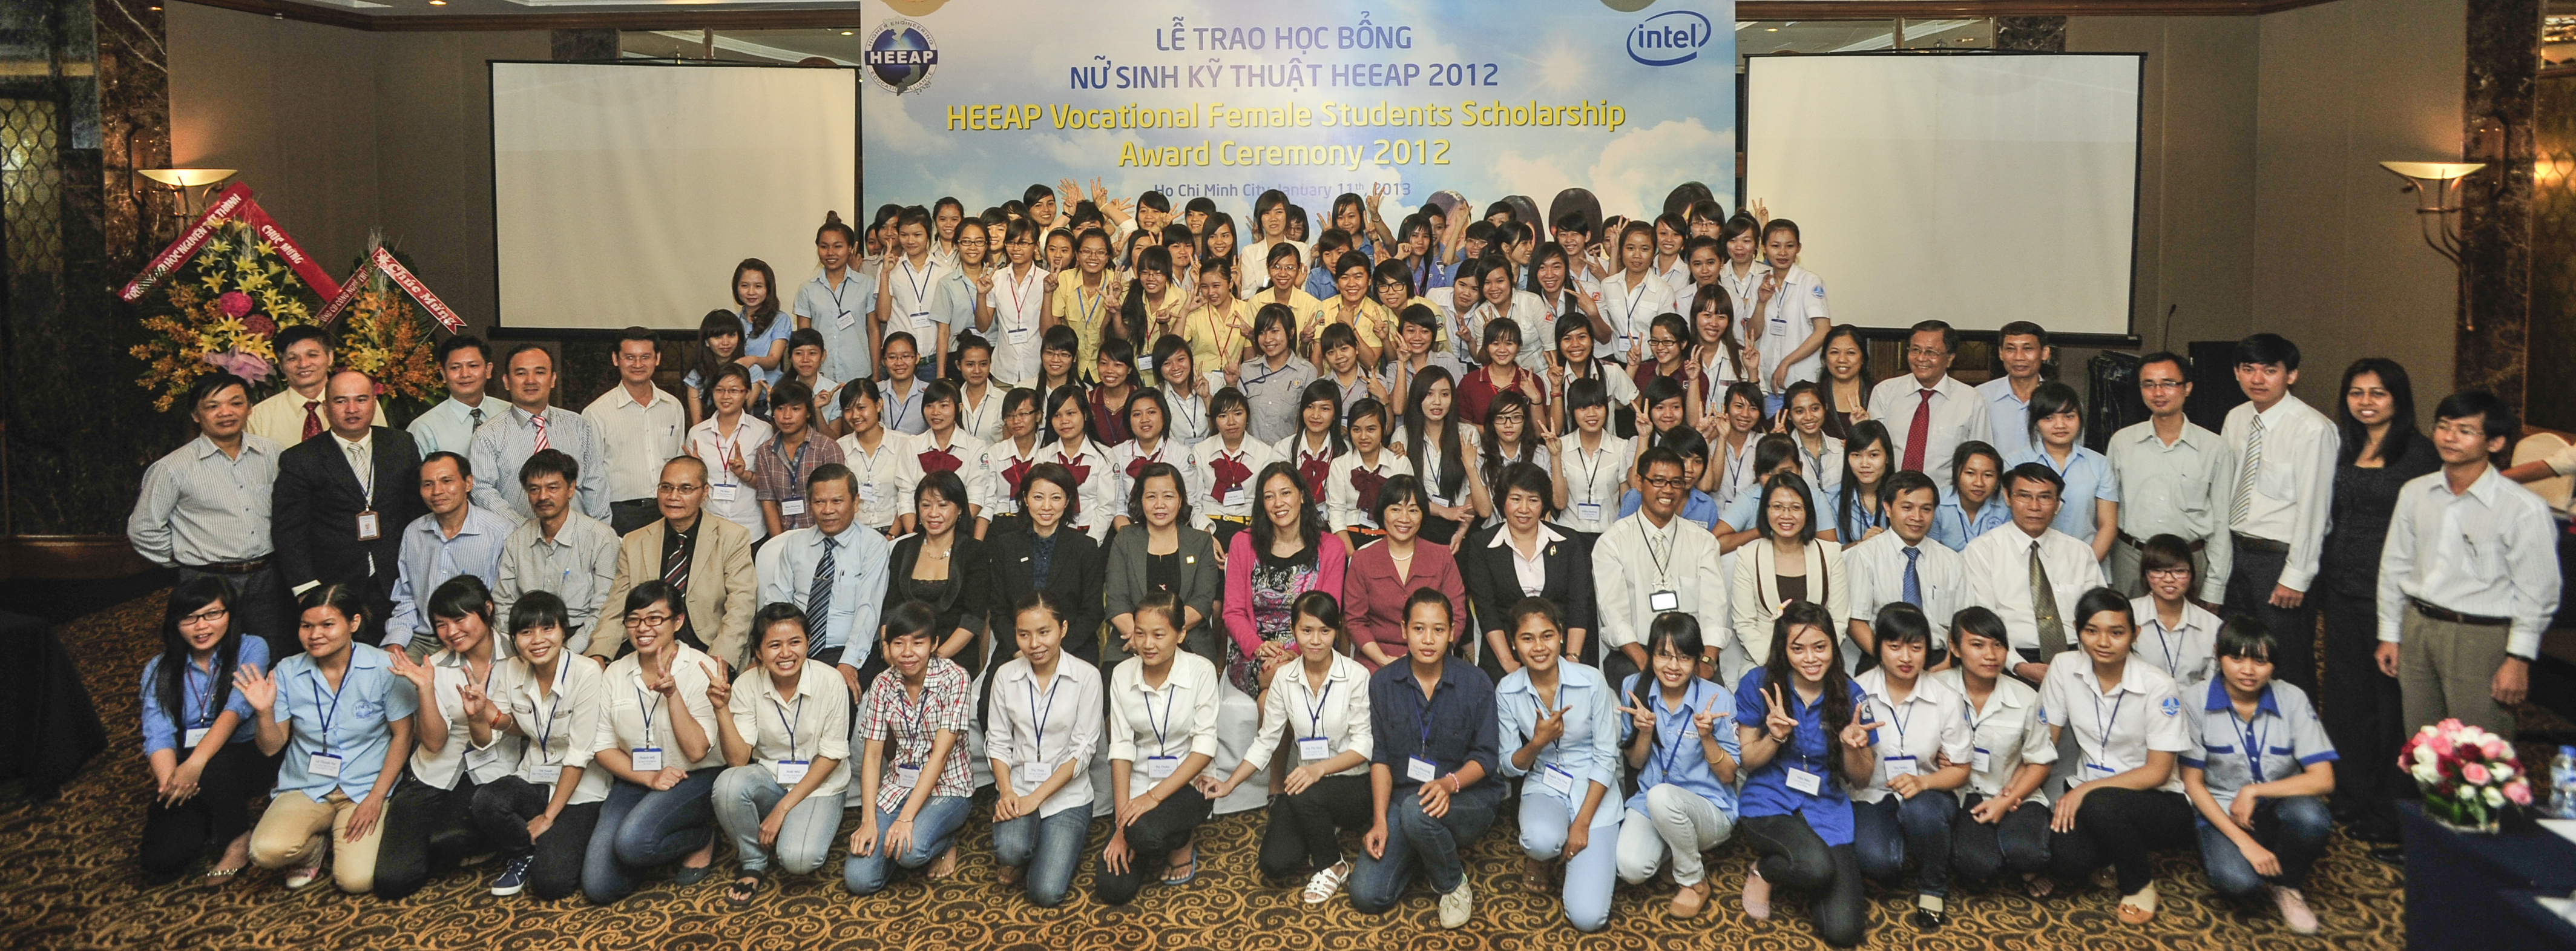 The first recipients of awards through the HEEAP Vocational Female Students Scholarship program were recognized at a ceremony held in Vietnam on January 11, 2013.